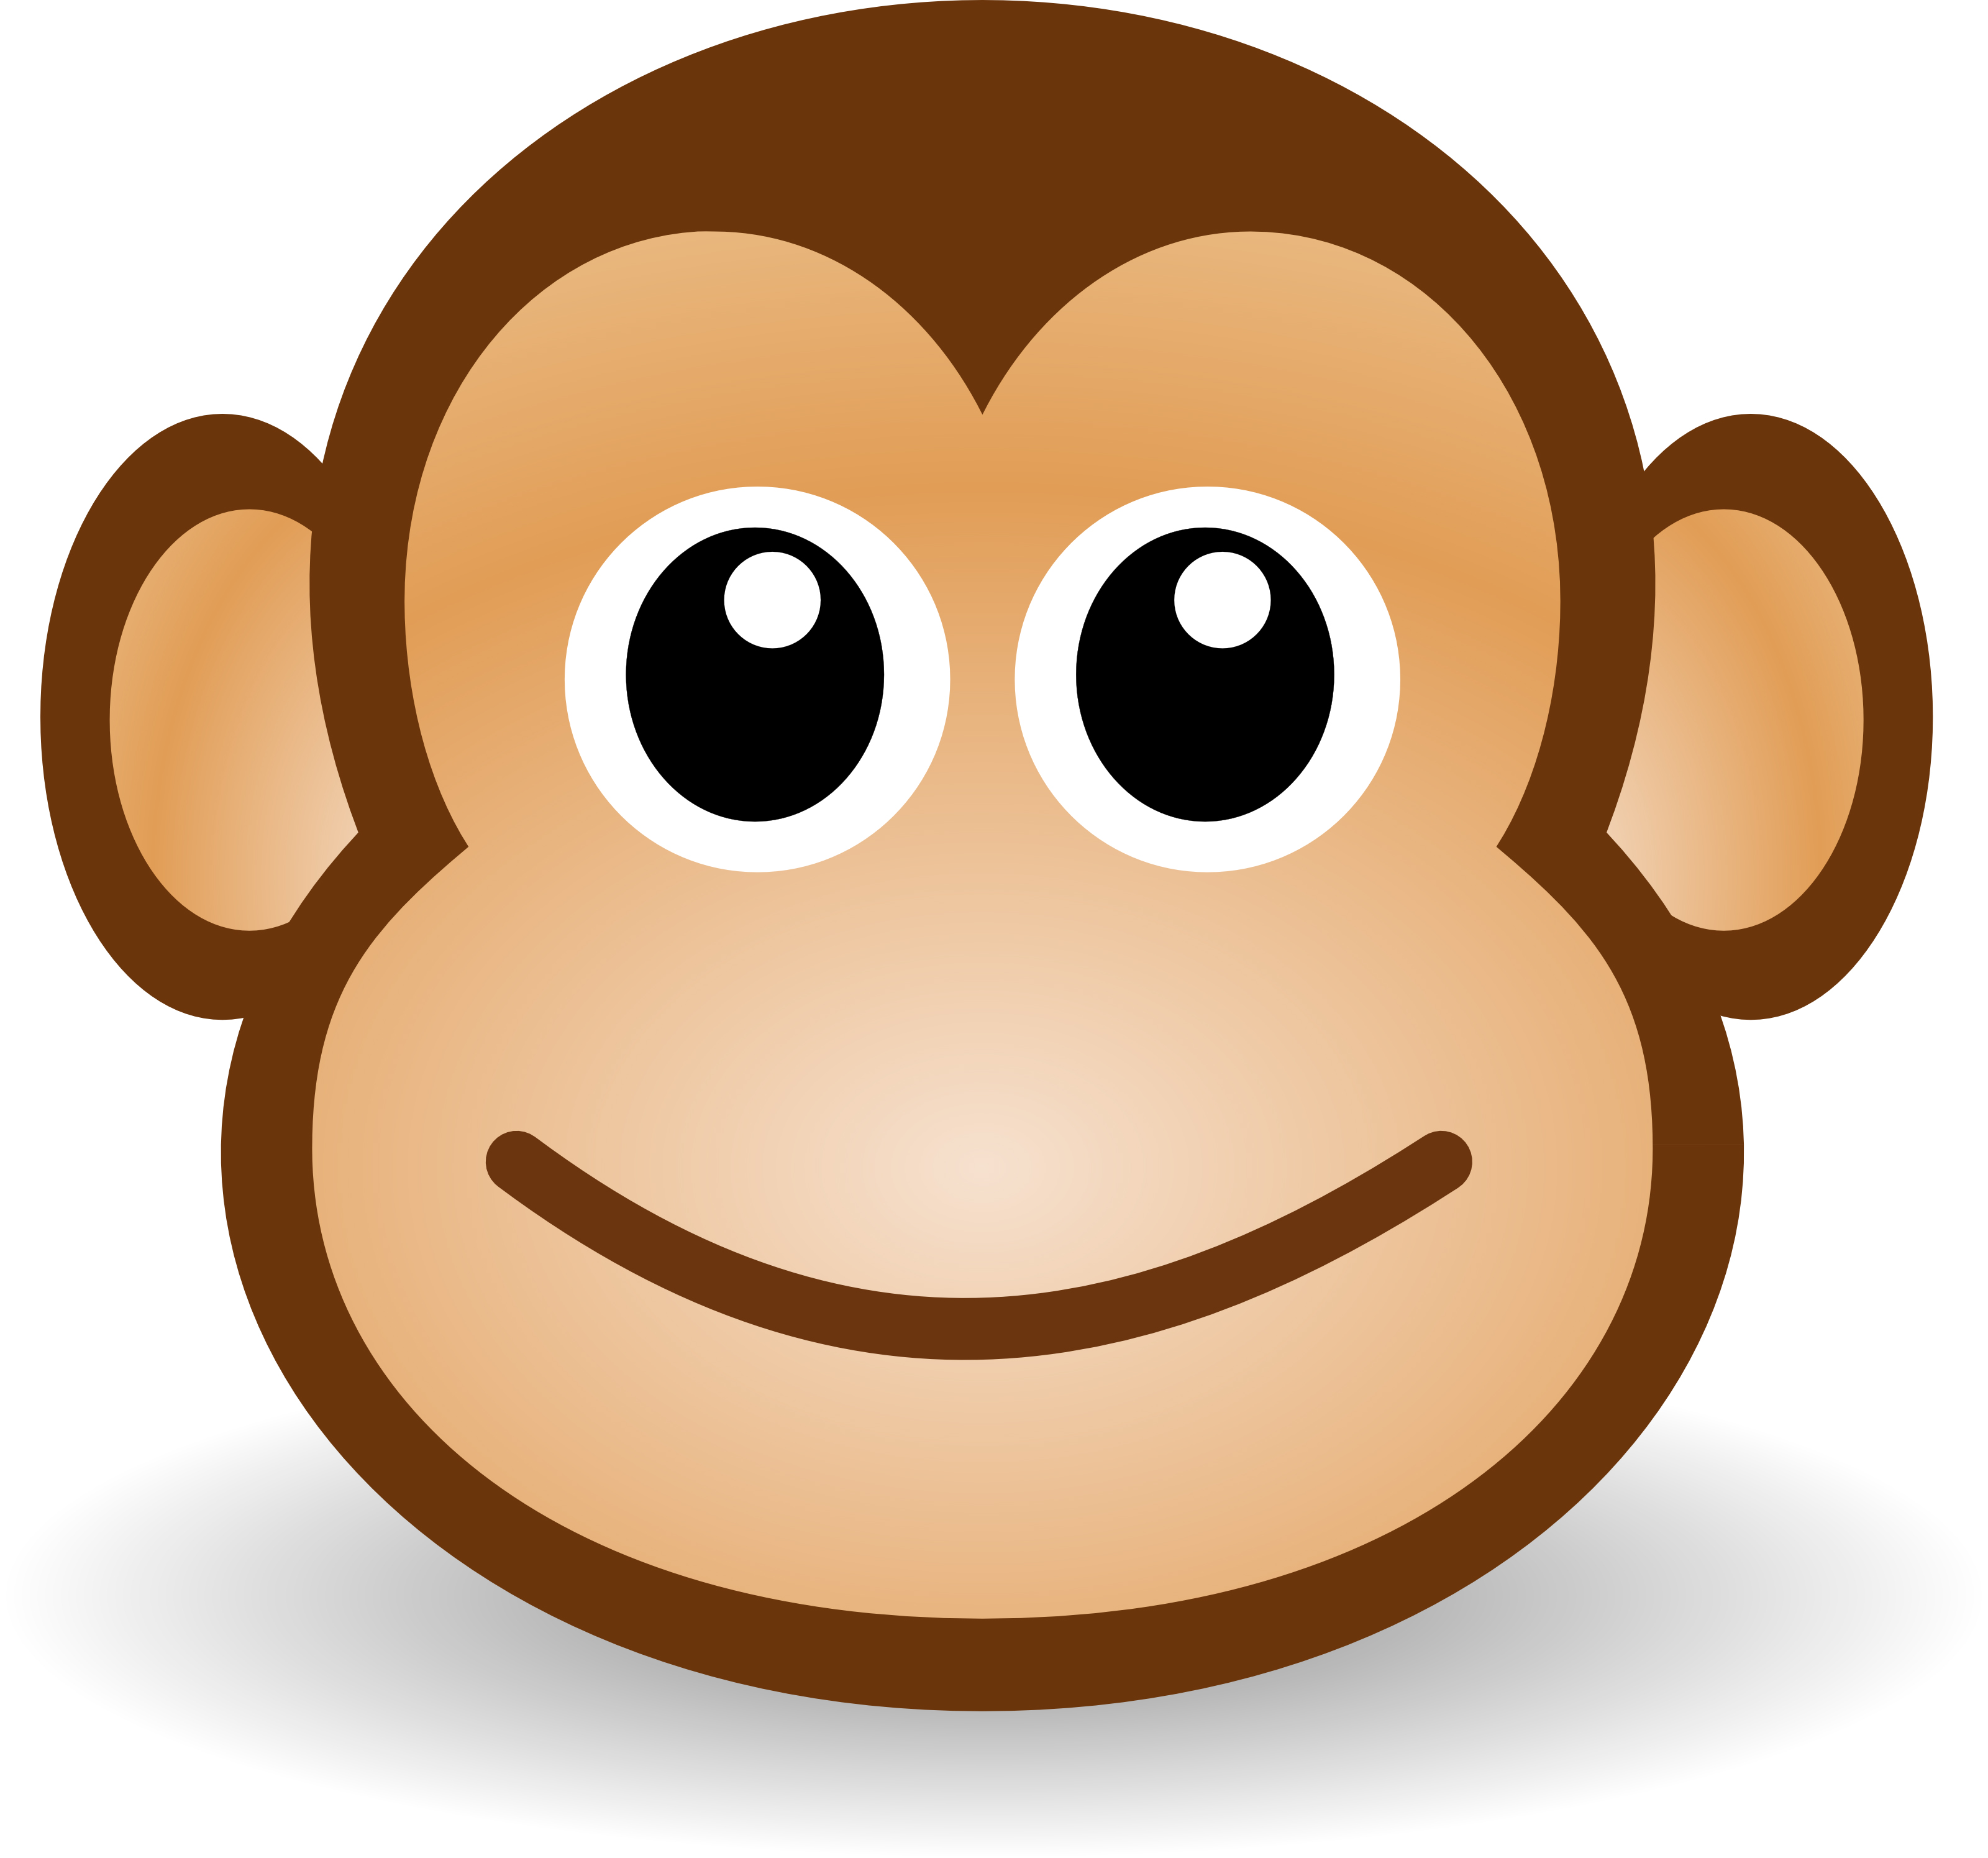 3200x2990 Free Cute Cartoon Monkey Clipart Illustration